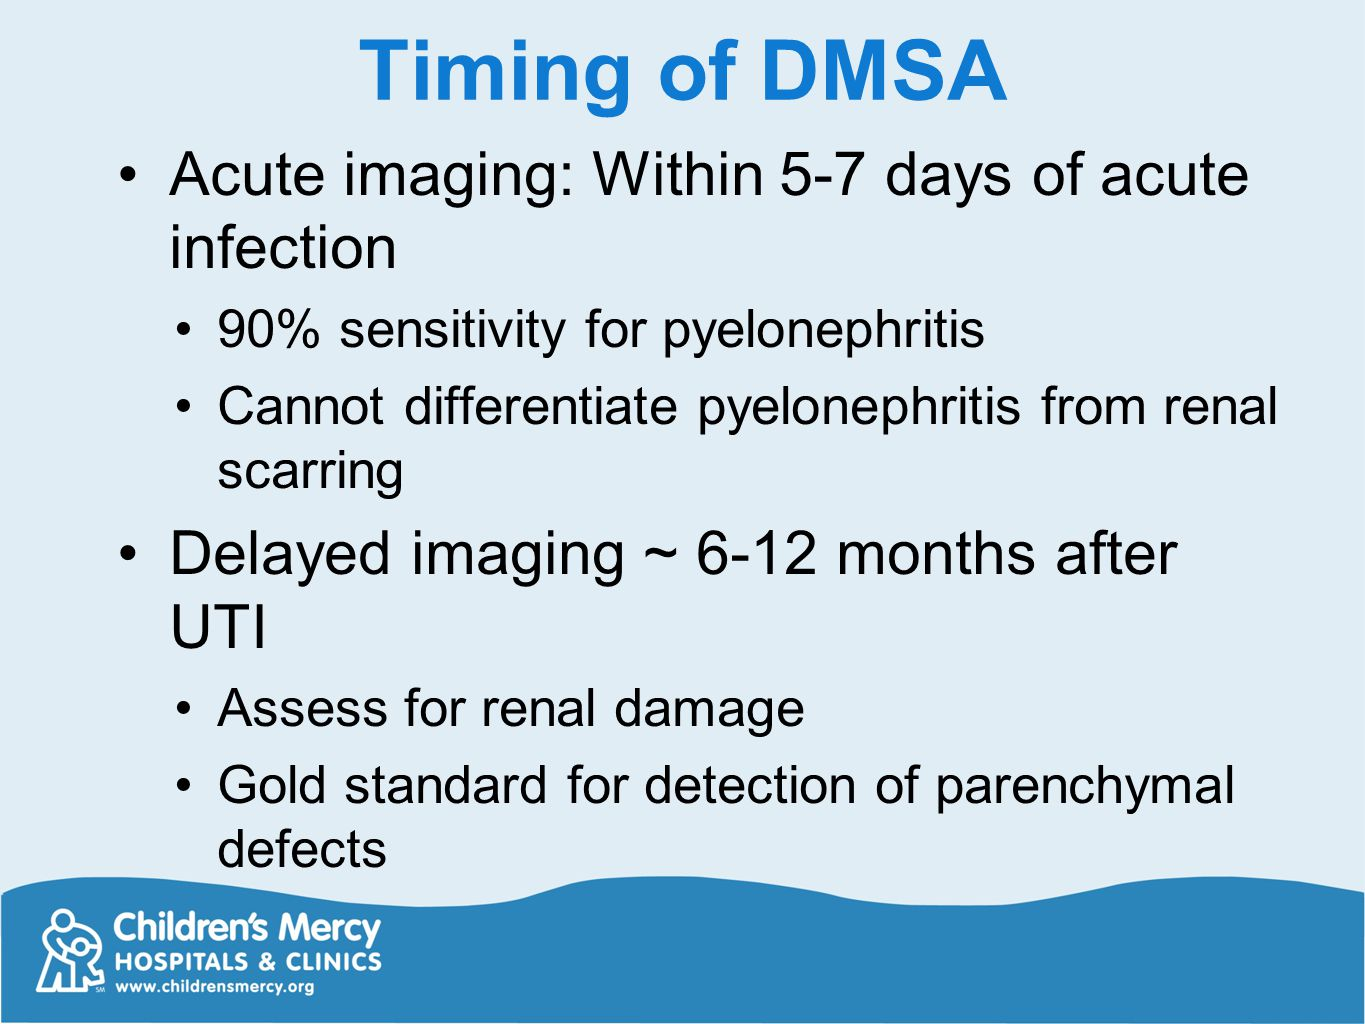 Timing of DMSA Acute imaging: Within 5-7 days of acute infection